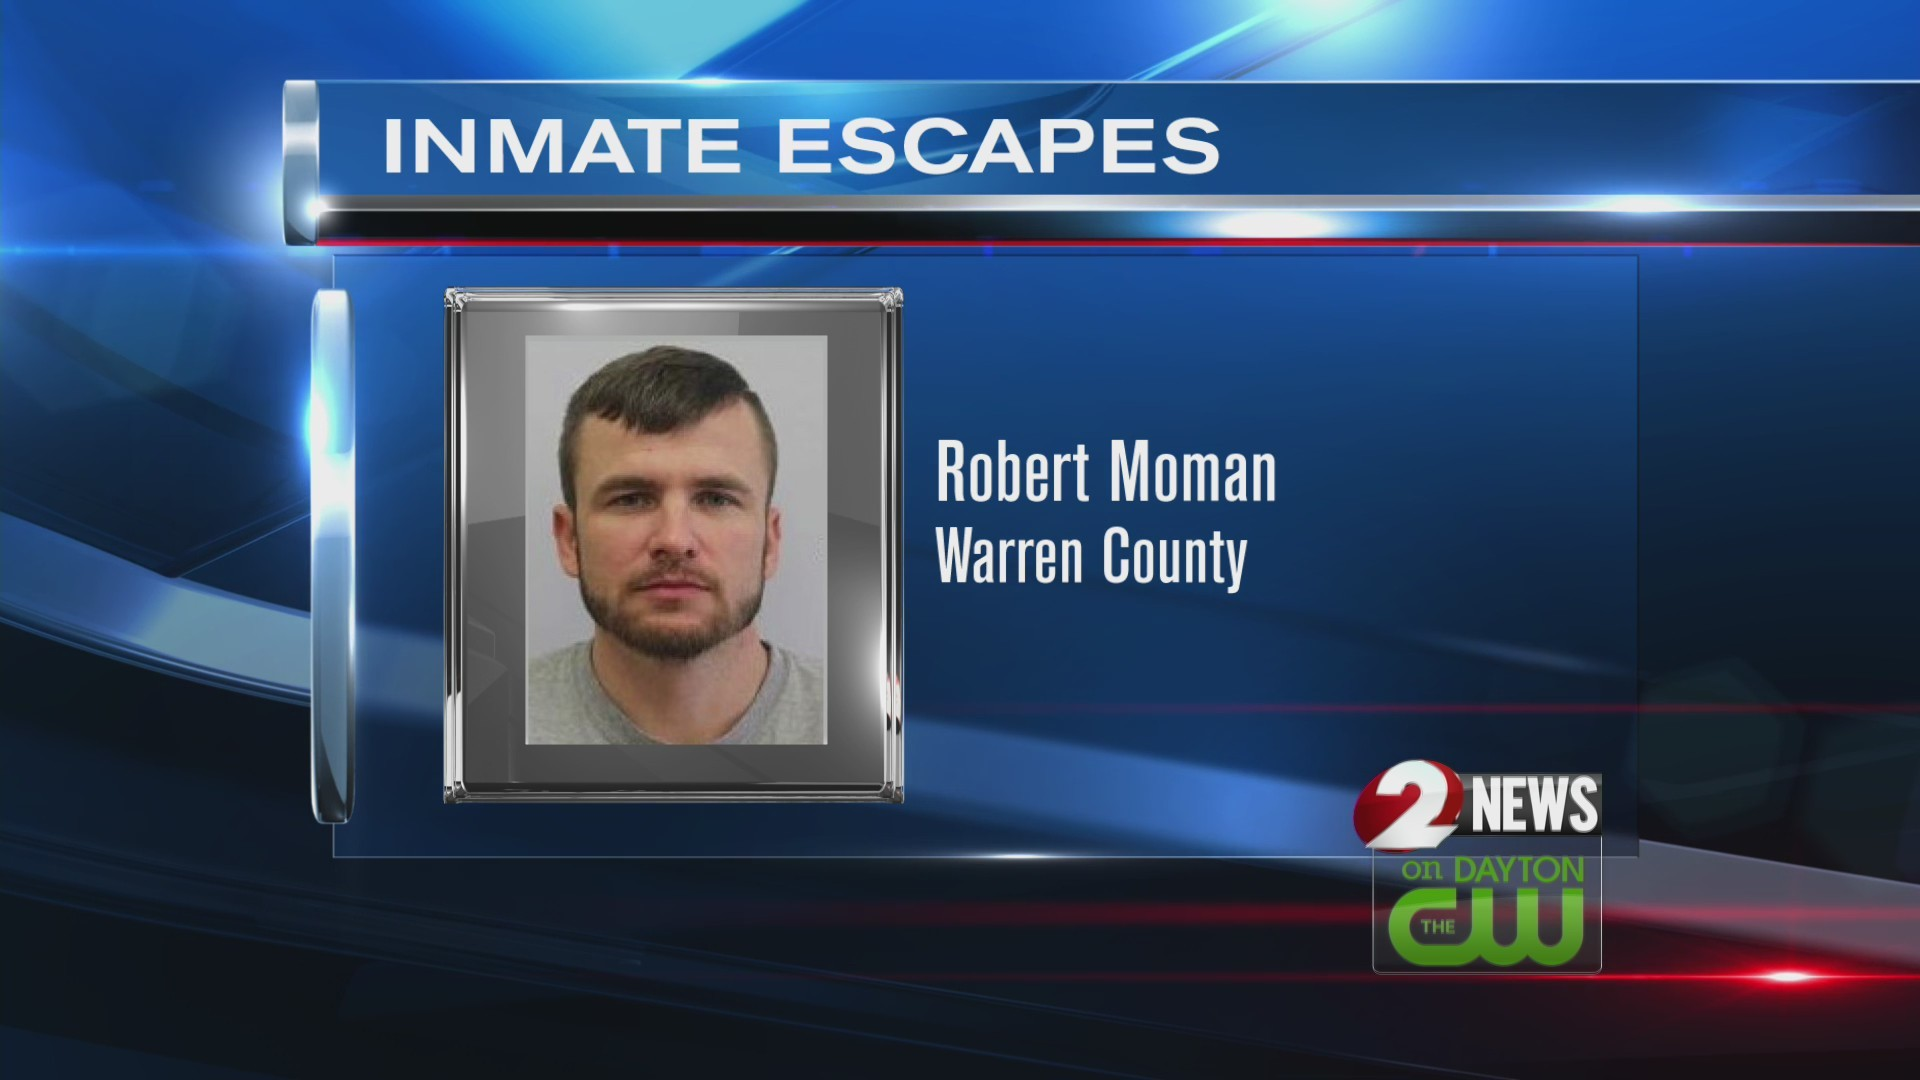 Inmate escapes in Warren County